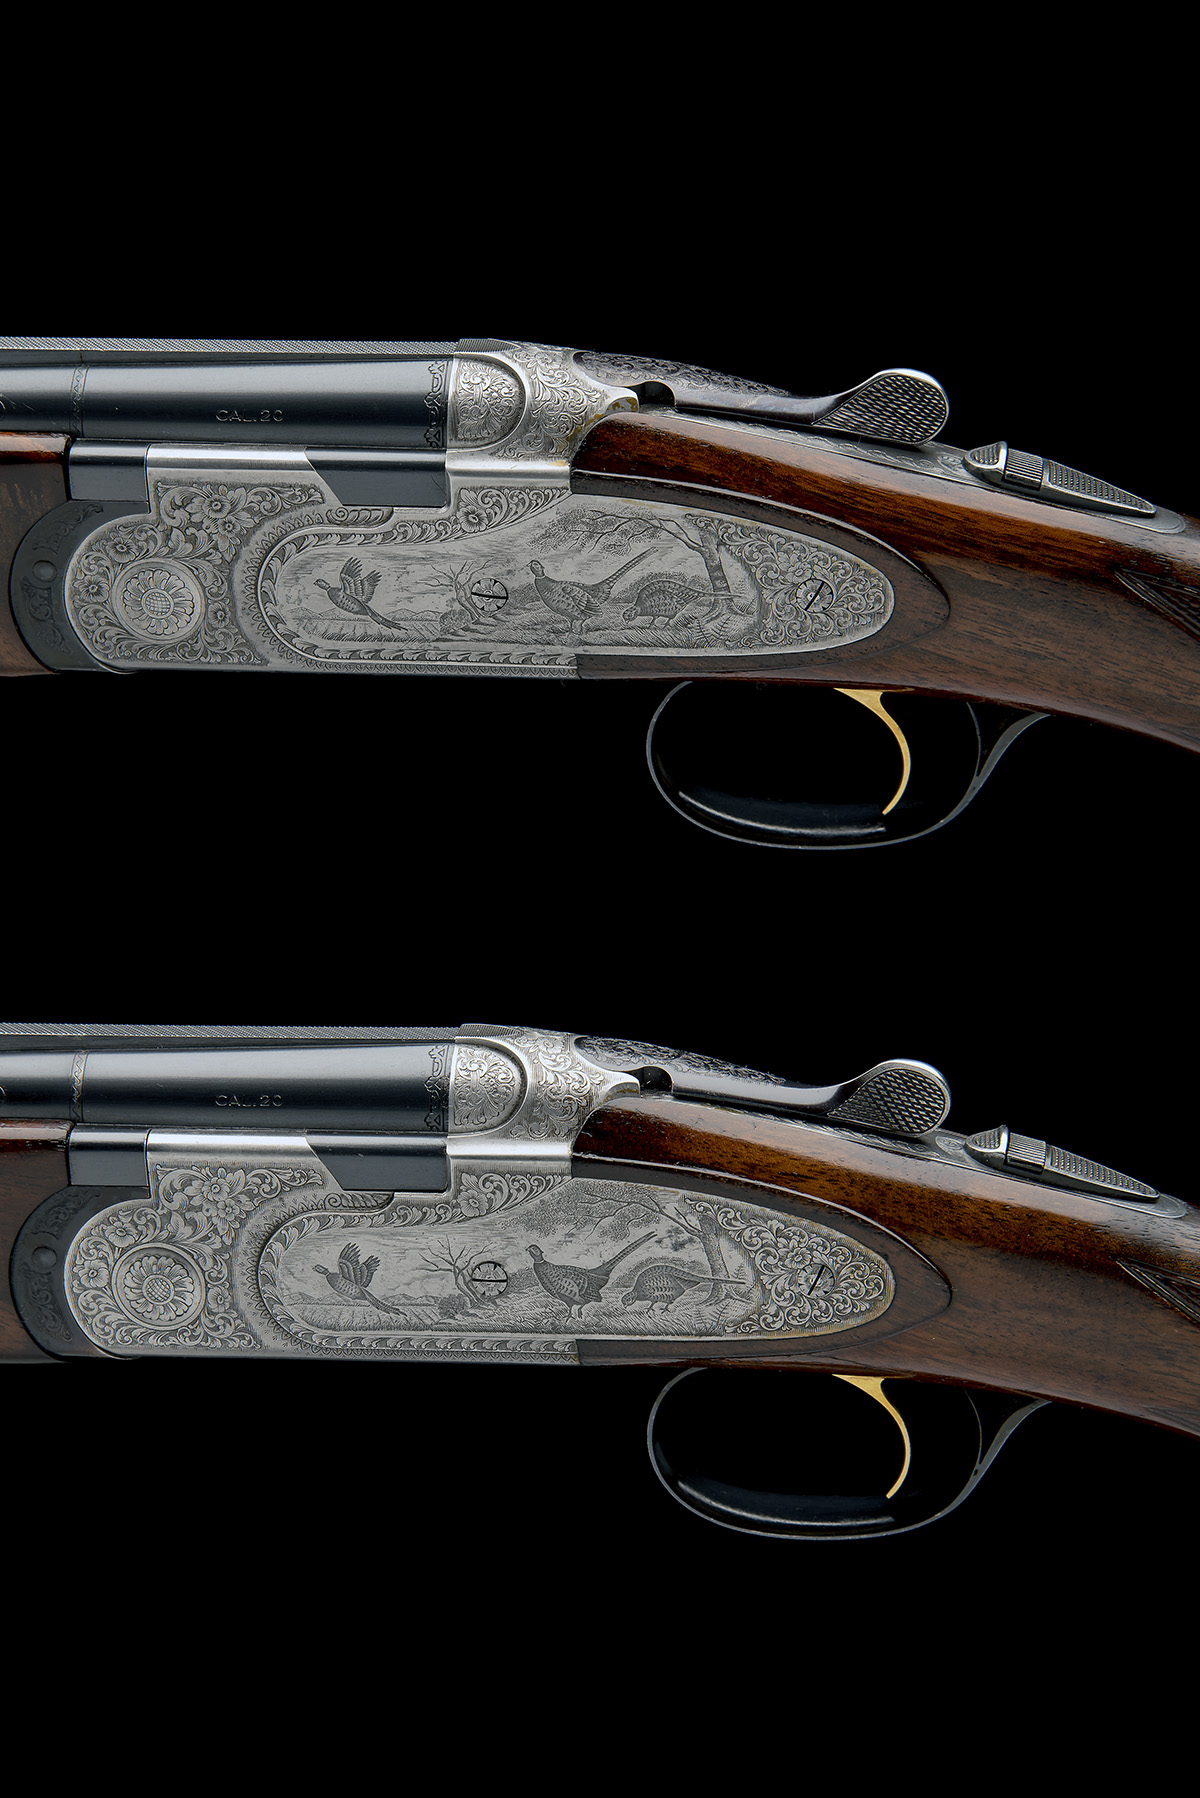 P. BERETTA A PAIR OF 20-BORE 'MOD. 687 EELL' SINGLE-TRIGGER OVER AND UNDER EJECTORS, serial no. - Image 4 of 10